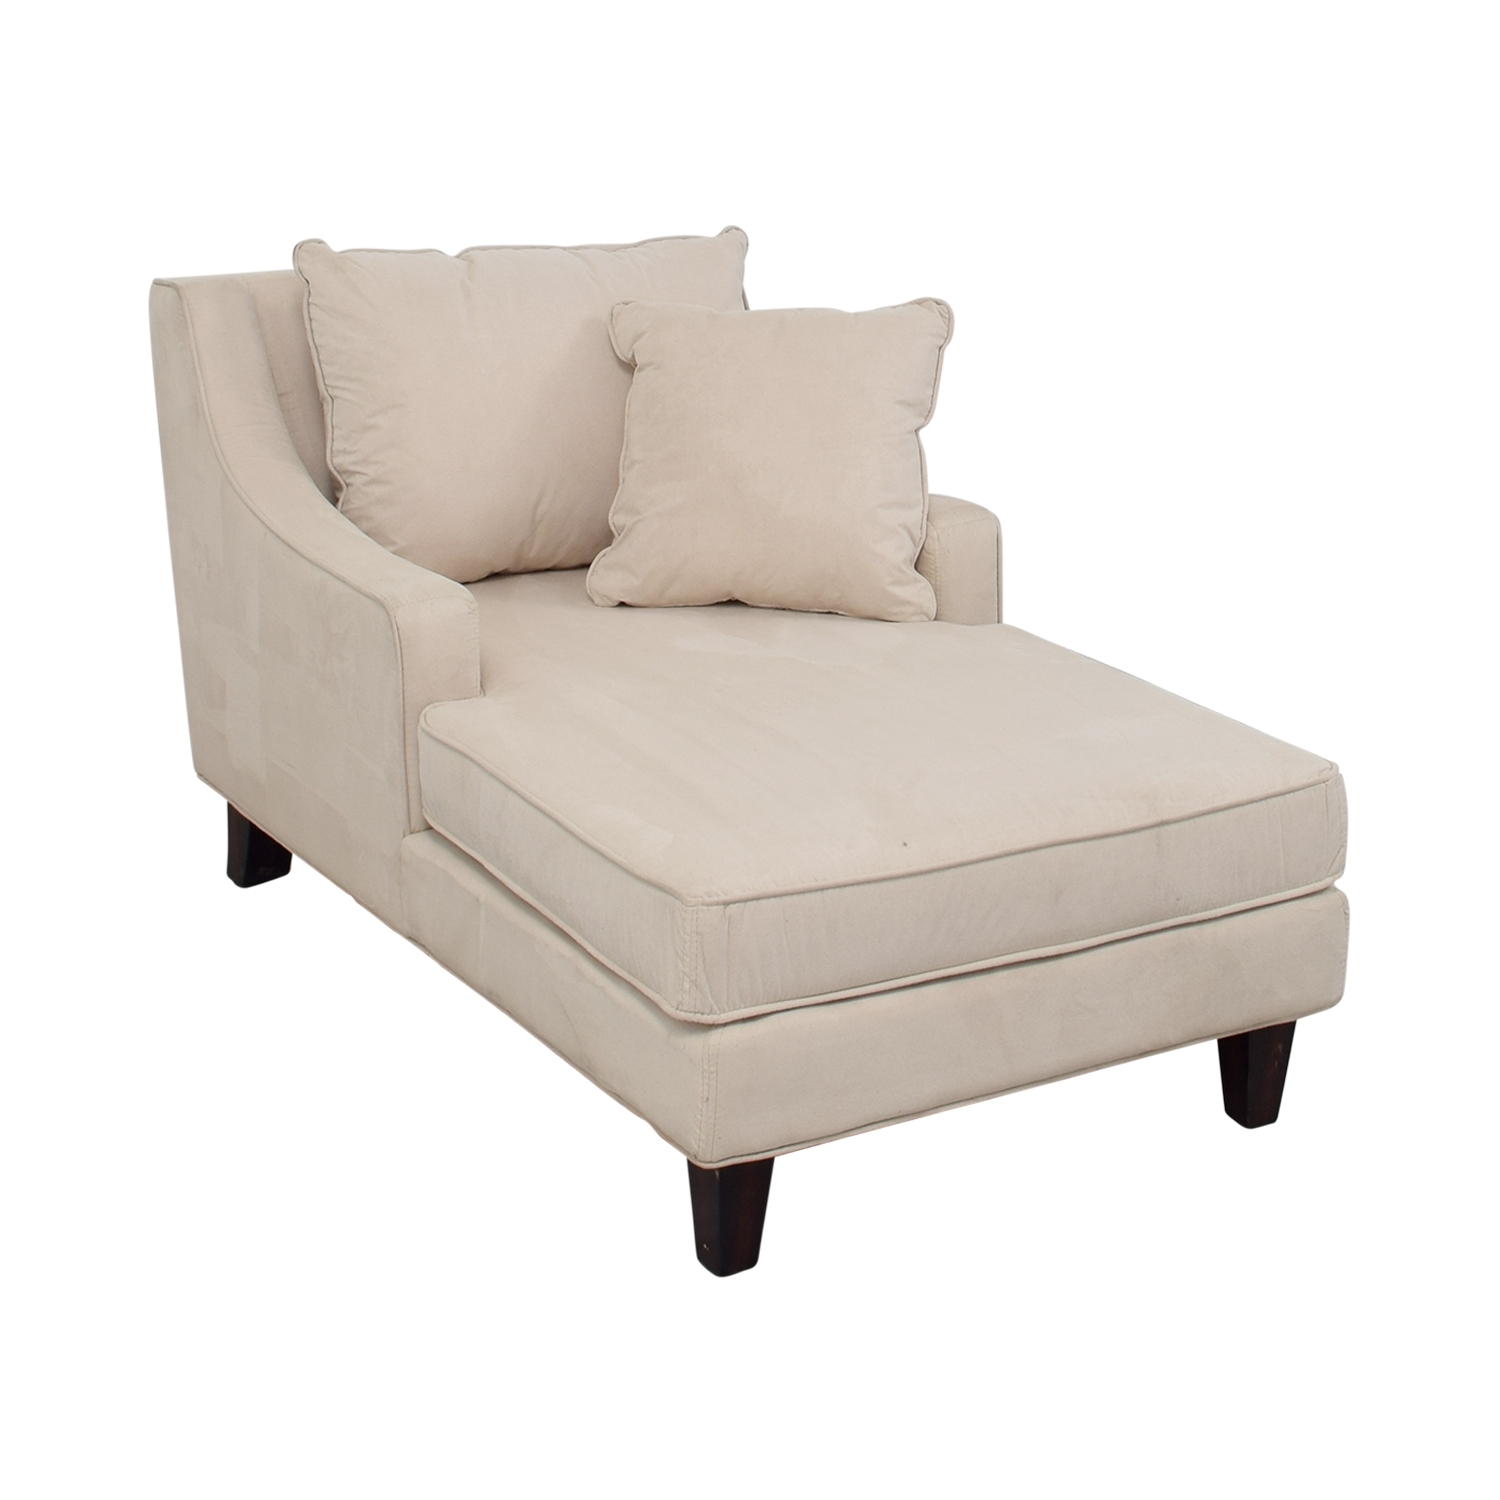 [%80% Off – Coaster Coaster Beige Microfiber Chaise Lounger / Sofas Intended For Preferred Microfiber Chaises|Microfiber Chaises Inside Most Up To Date 80% Off – Coaster Coaster Beige Microfiber Chaise Lounger / Sofas|Preferred Microfiber Chaises Regarding 80% Off – Coaster Coaster Beige Microfiber Chaise Lounger / Sofas|Current 80% Off – Coaster Coaster Beige Microfiber Chaise Lounger / Sofas Throughout Microfiber Chaises%] (View 5 of 15)